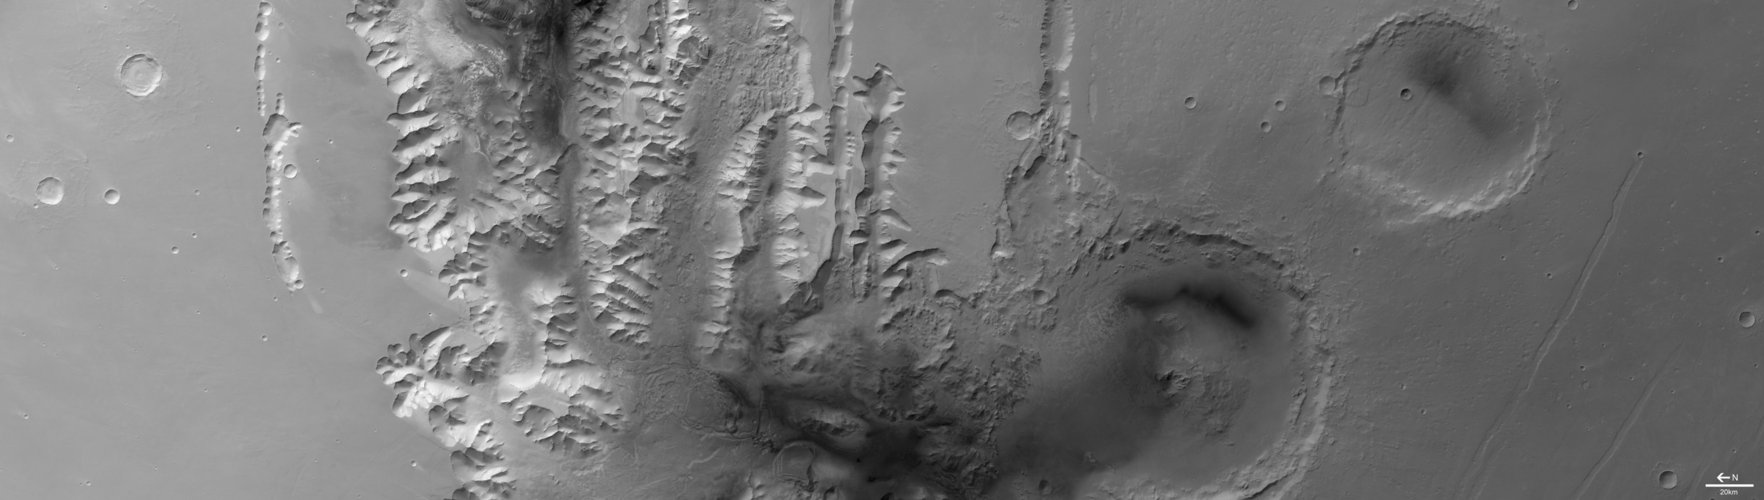 Tithonium Chasma in black and white